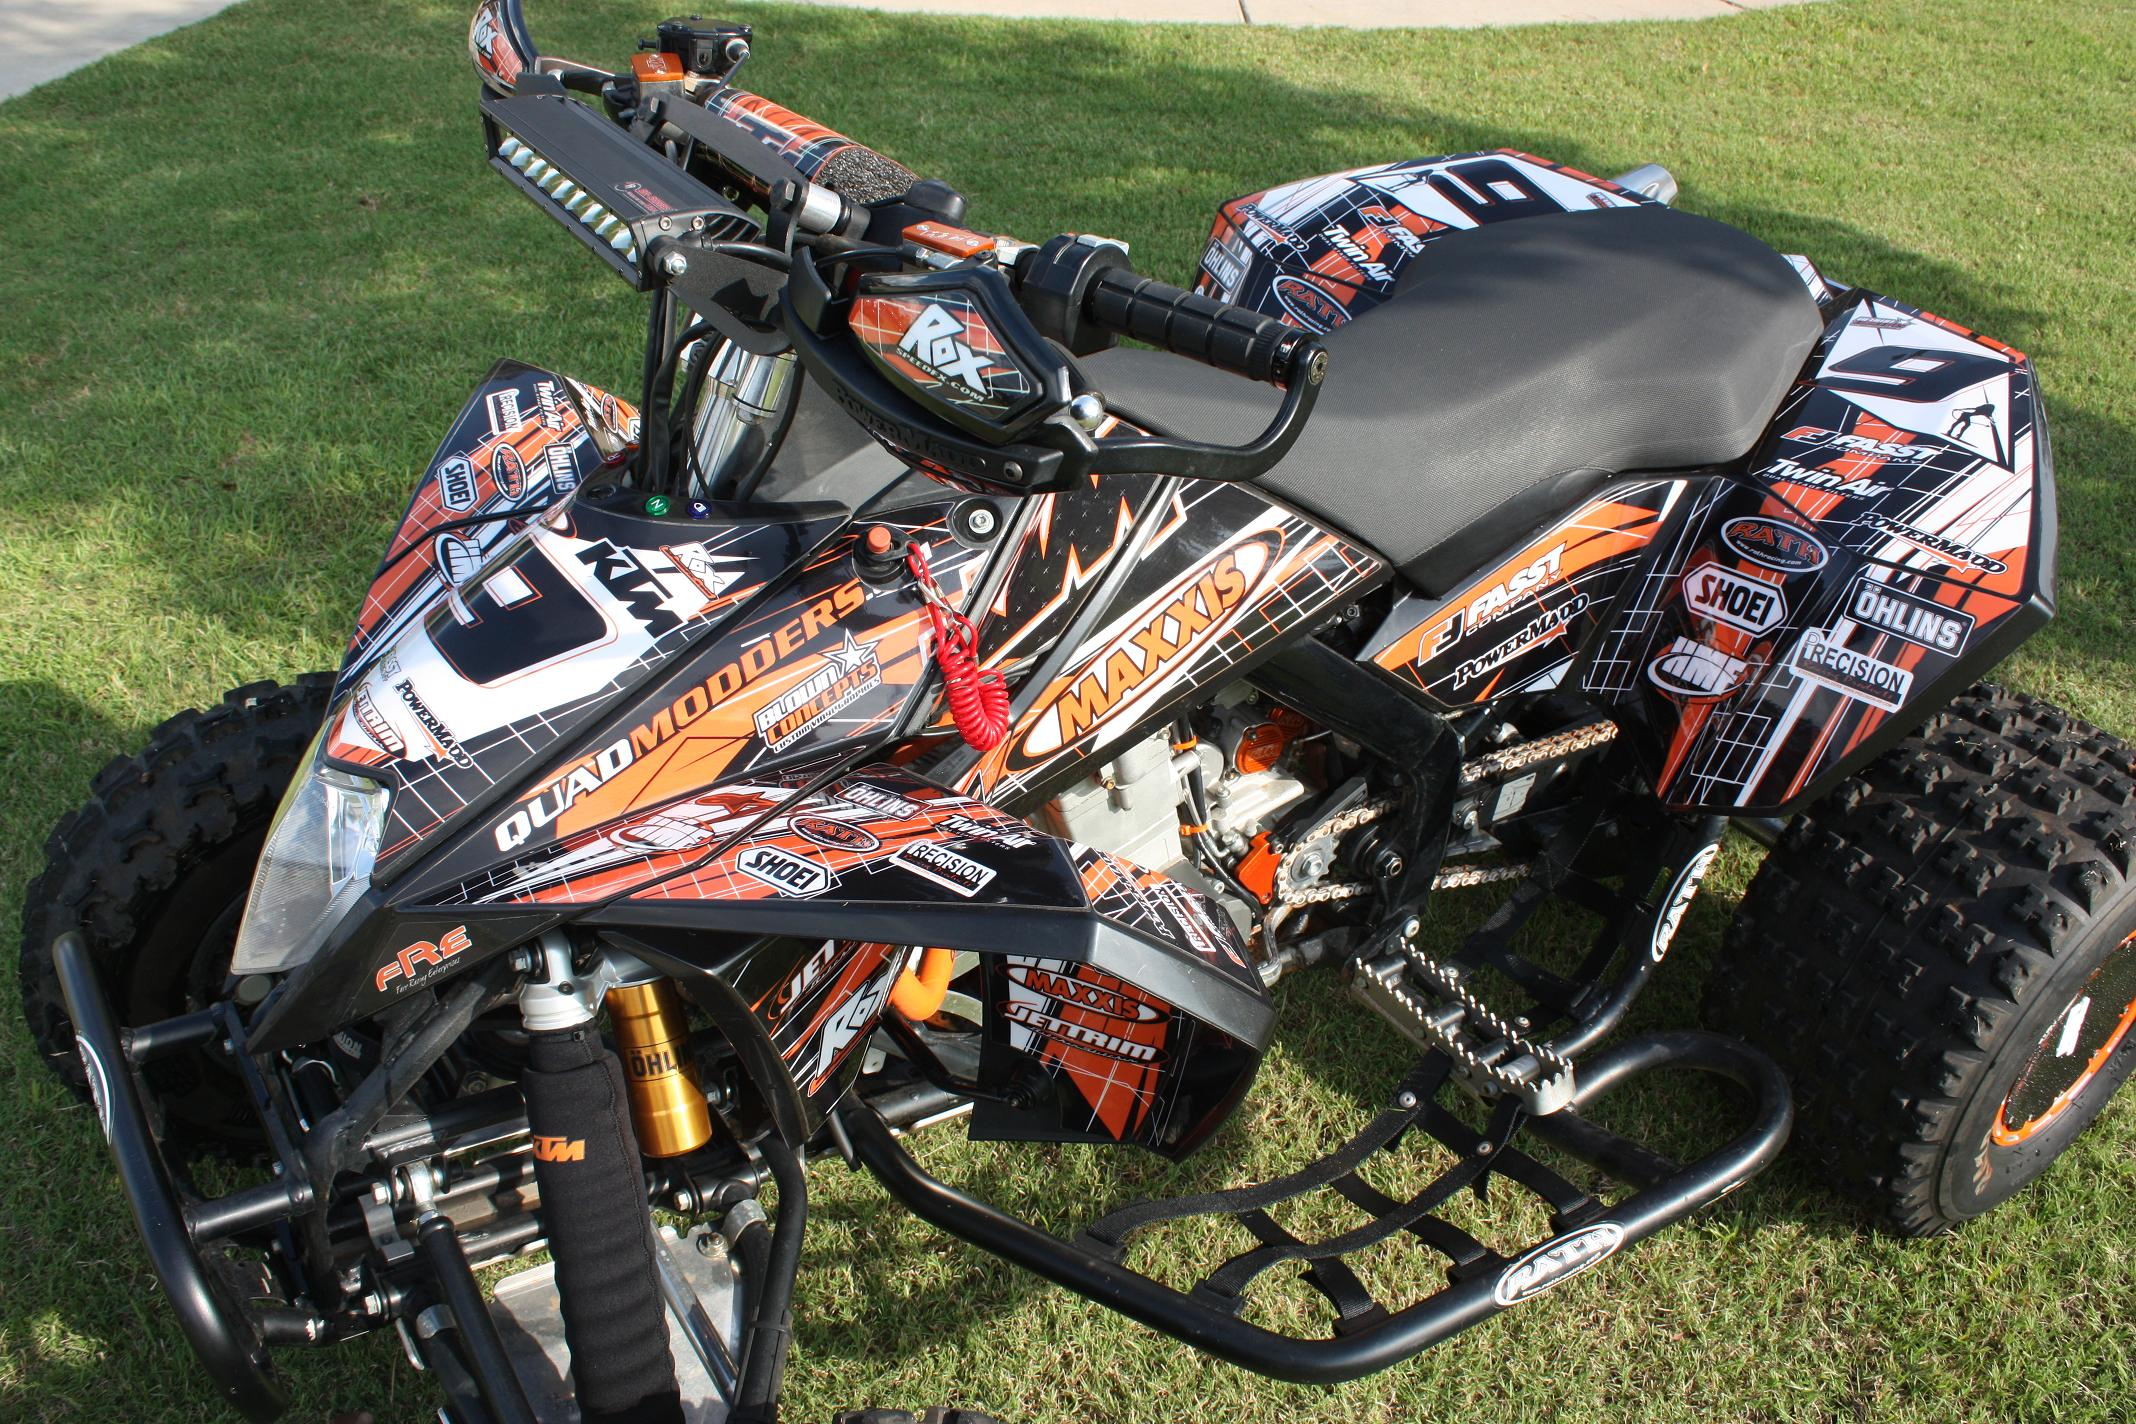 ktm 525xc builttim farr and sam sheahan last year, for sale!